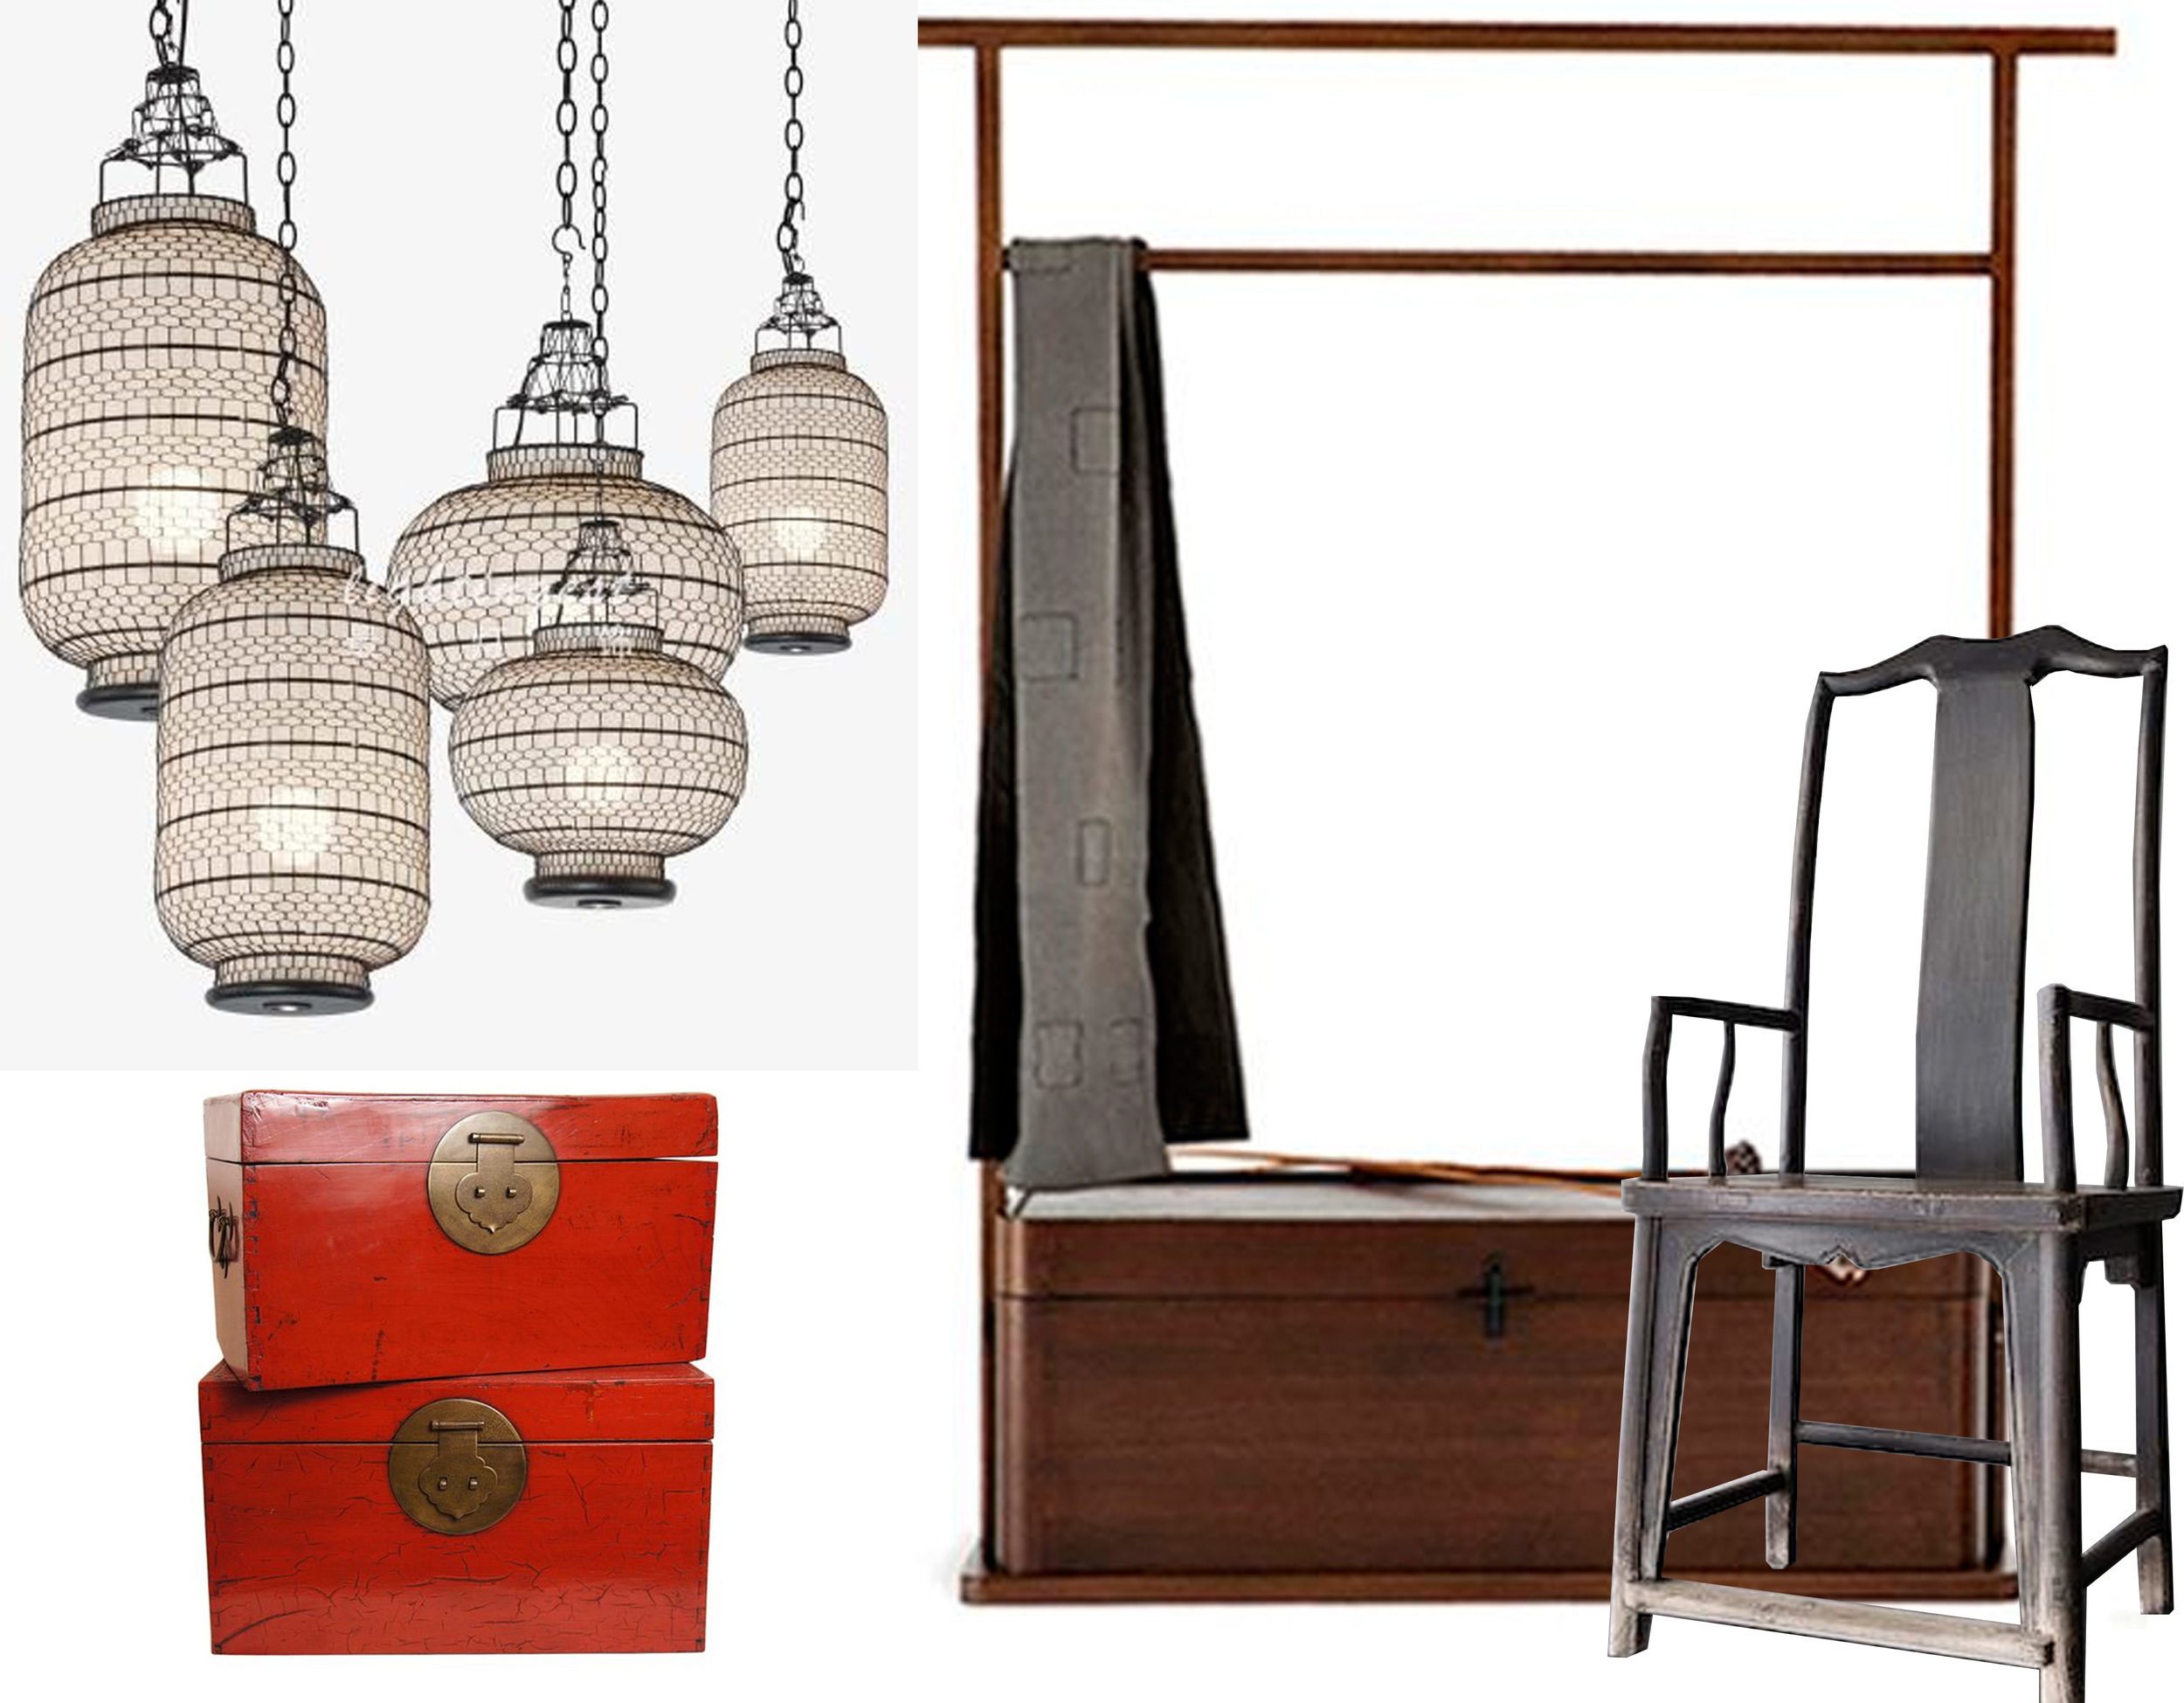 lanterns  Lightingest  -  Chinese document boxes  1stdibs  - cloath stand U+Furniture  Collectiv Red  -  old oak chair on  Oliver Gustav